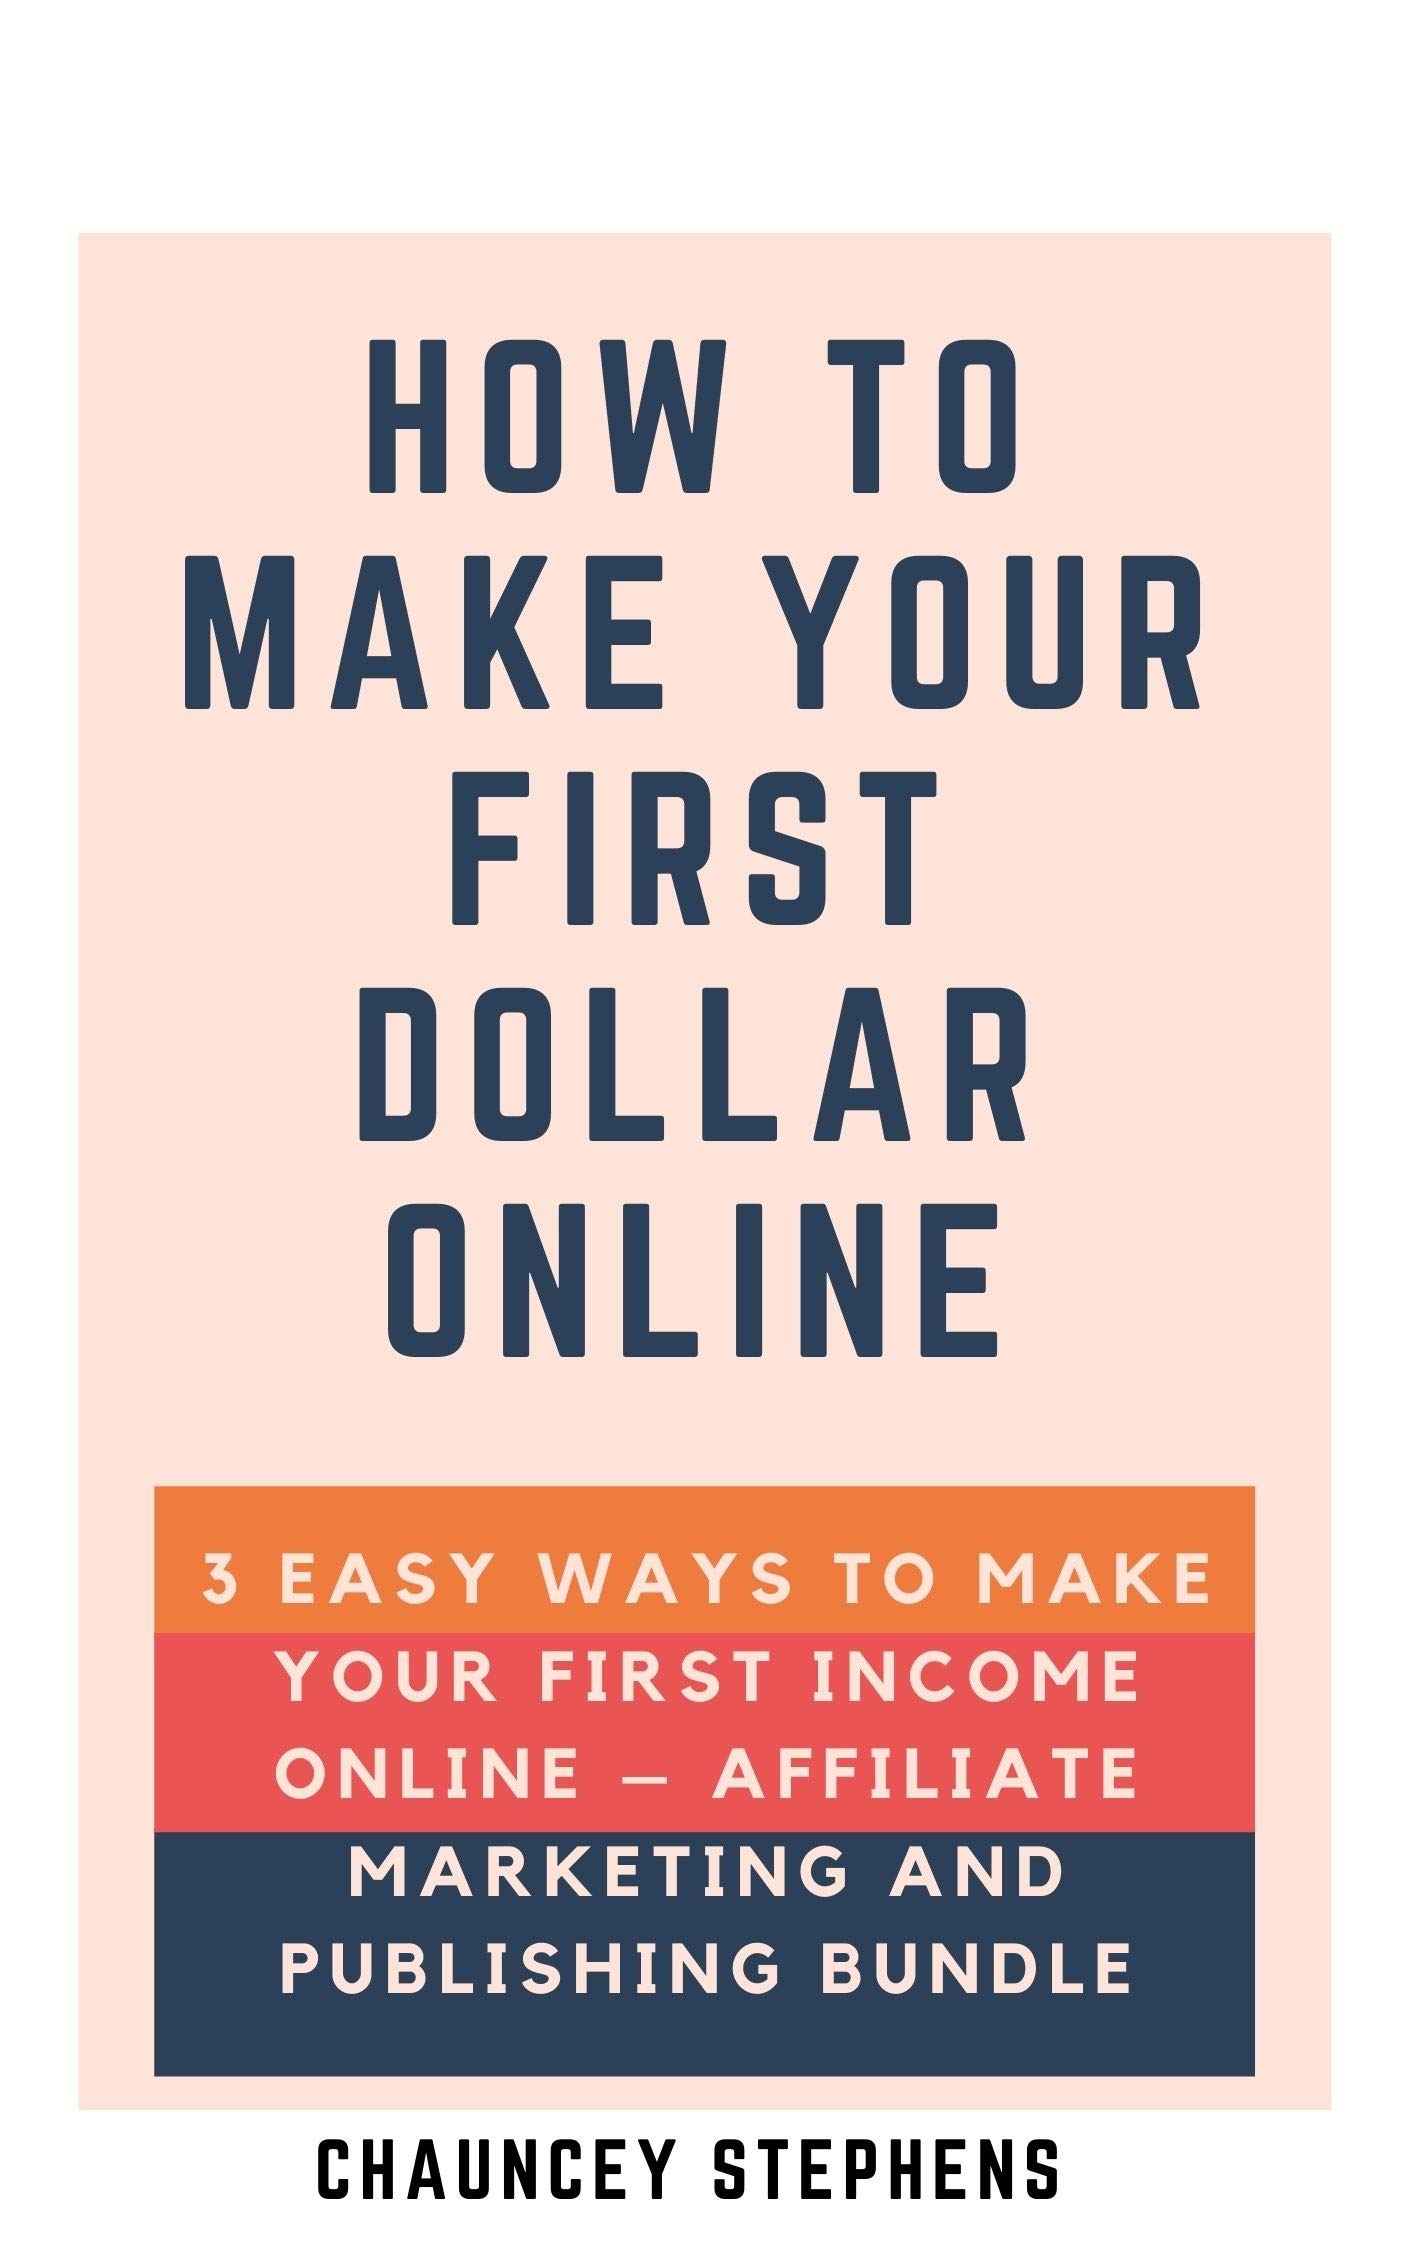 How to Make Your First Dollar Online: 3 Easy Ways to Make Your First Income Online – Affiliate Marketing and Publishing Bundle